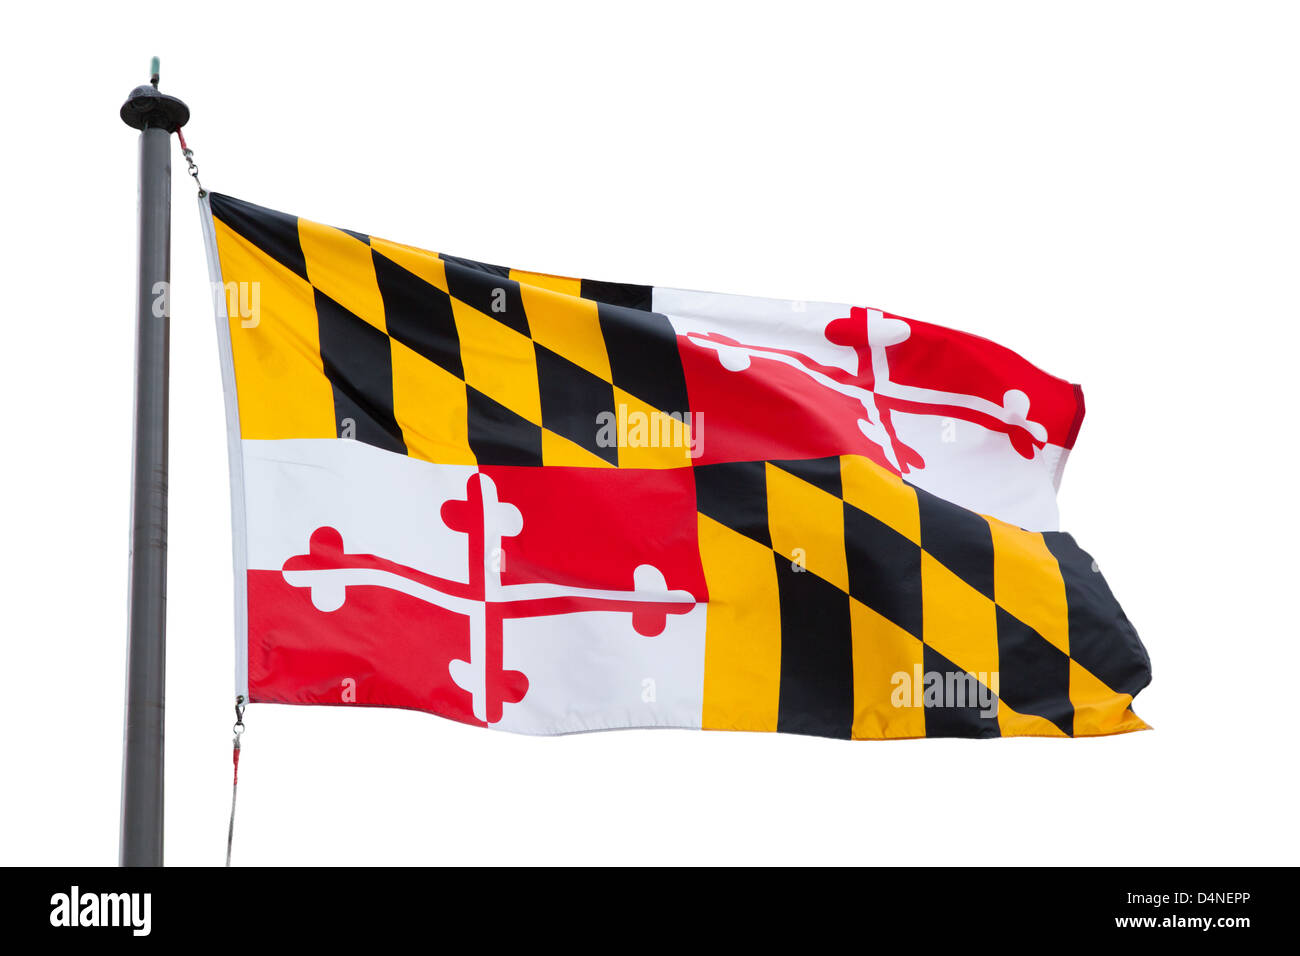 Flag of Maryland, United States, using arms of Cecilius Calvert, 2nd Baron Baltimore, only state flag based on English - Stock Image